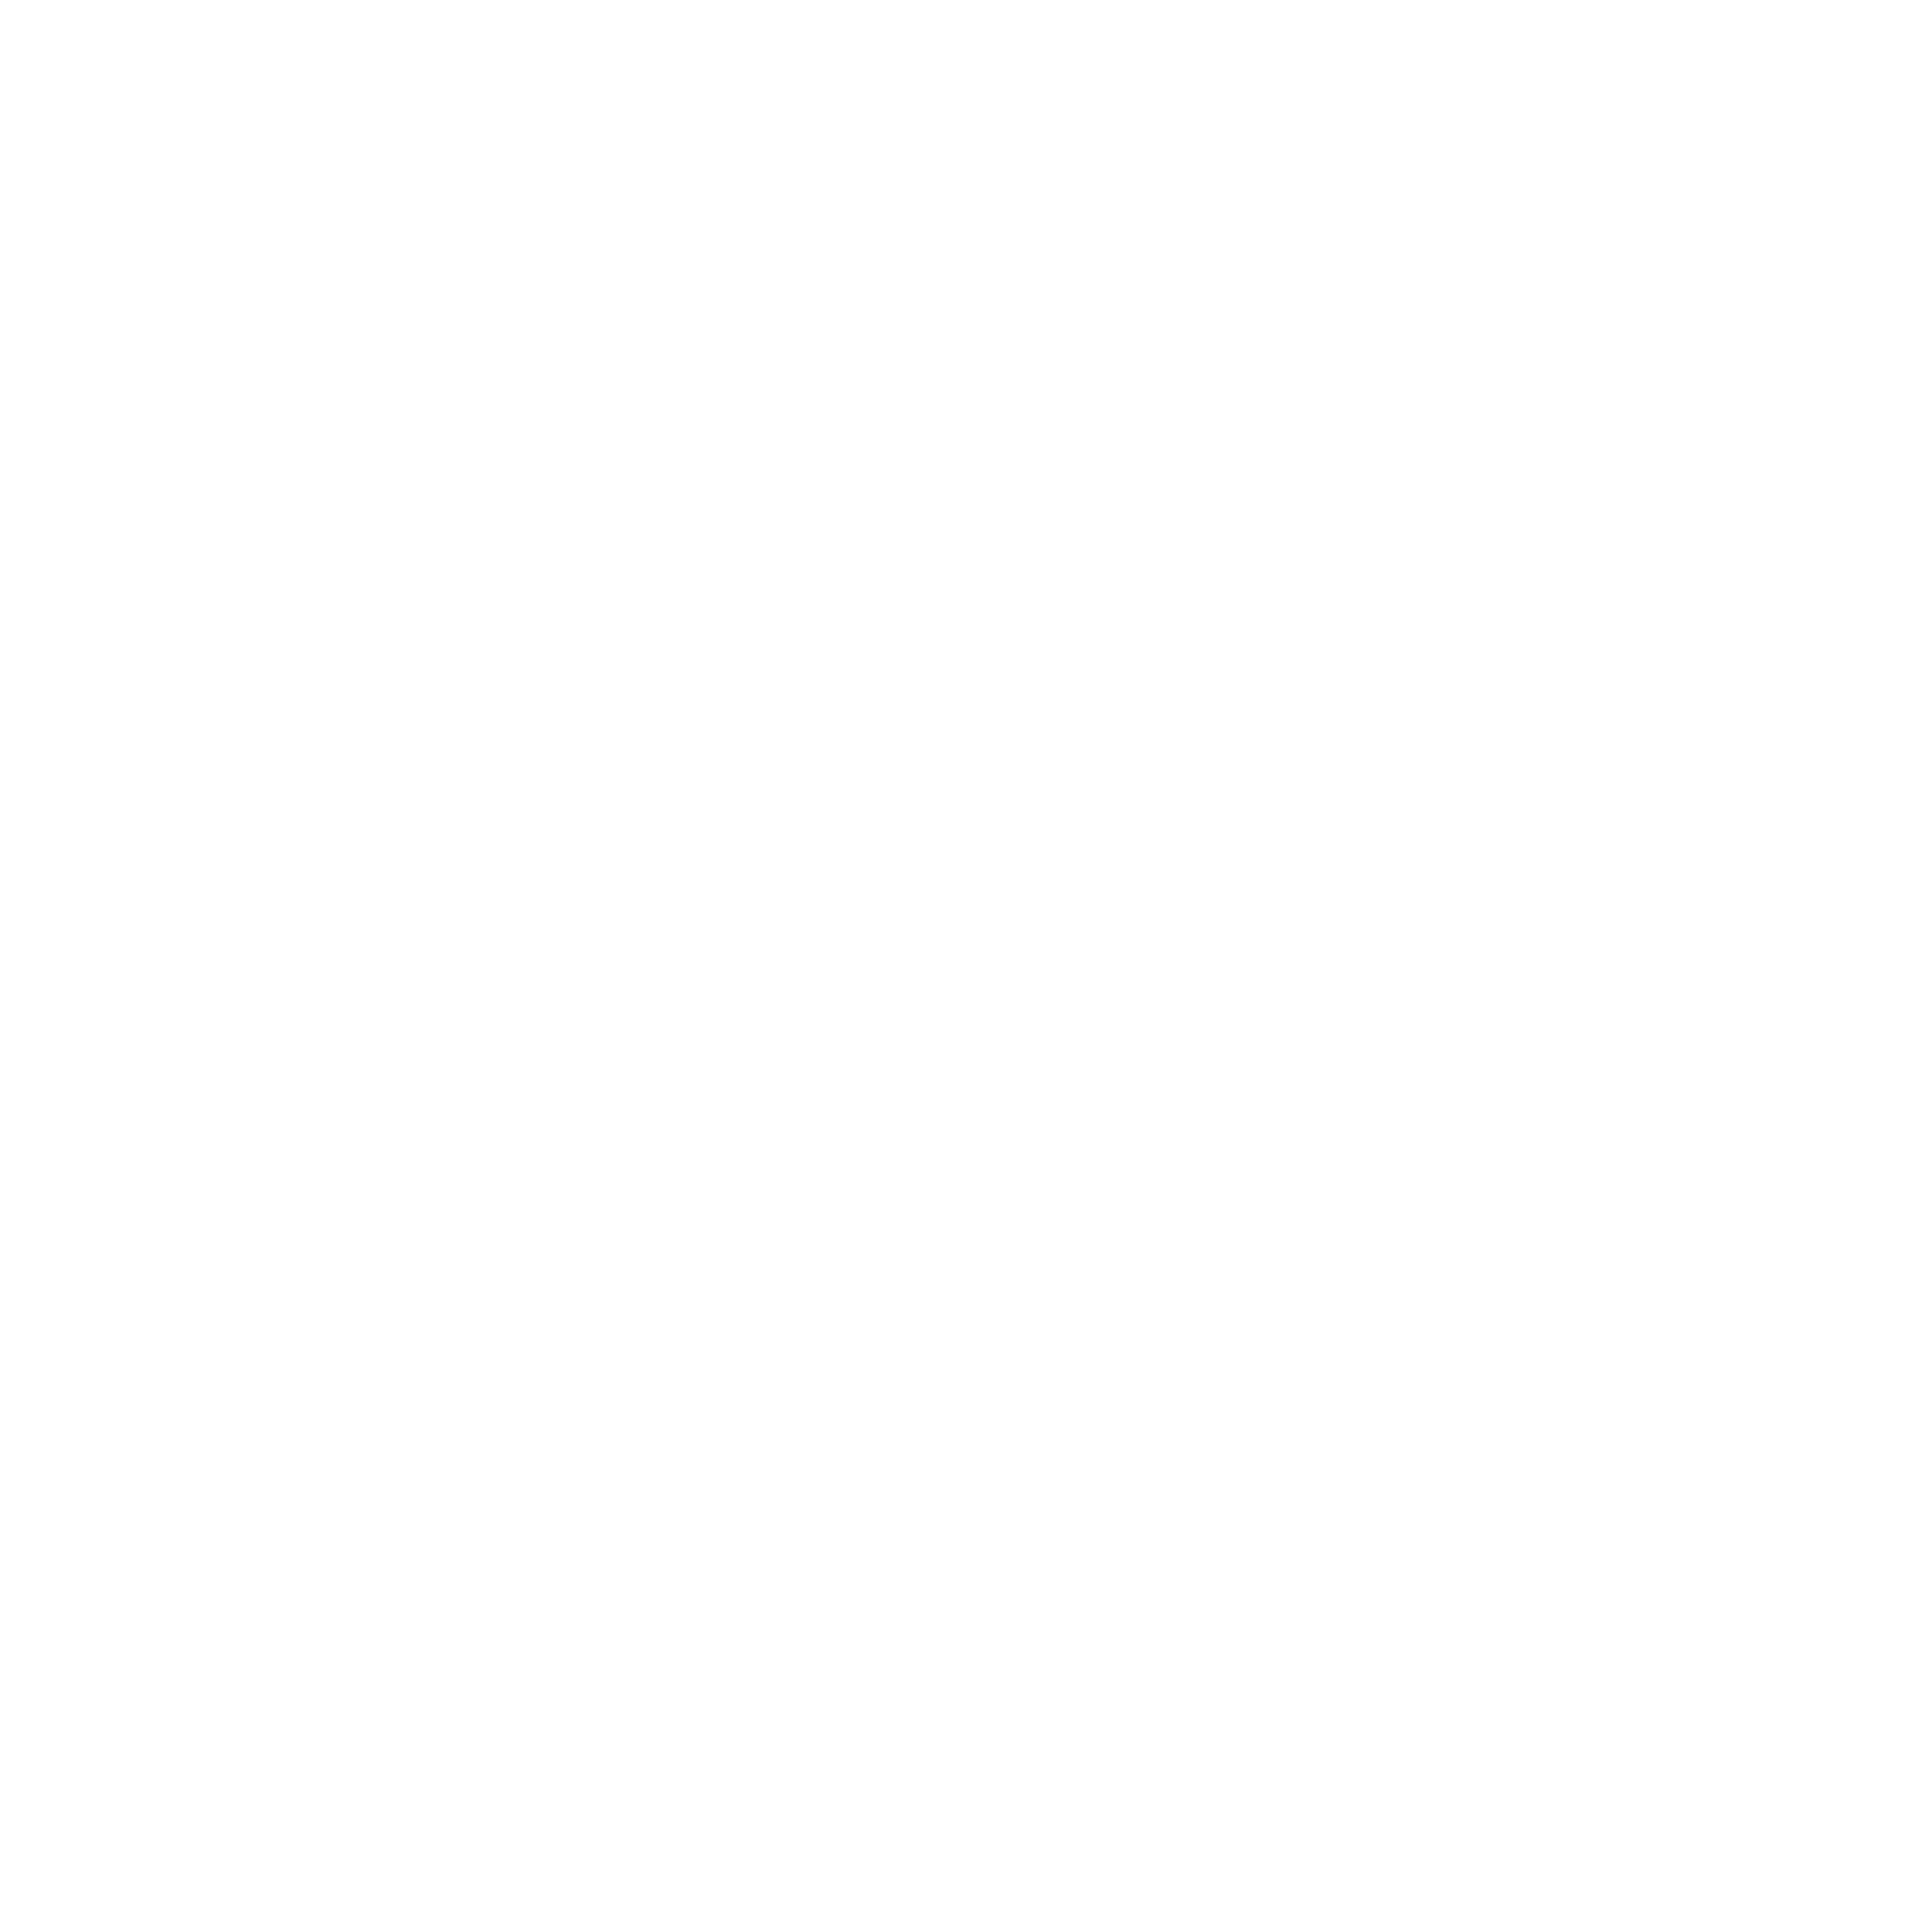 north-sails-1-logo-black-and-white